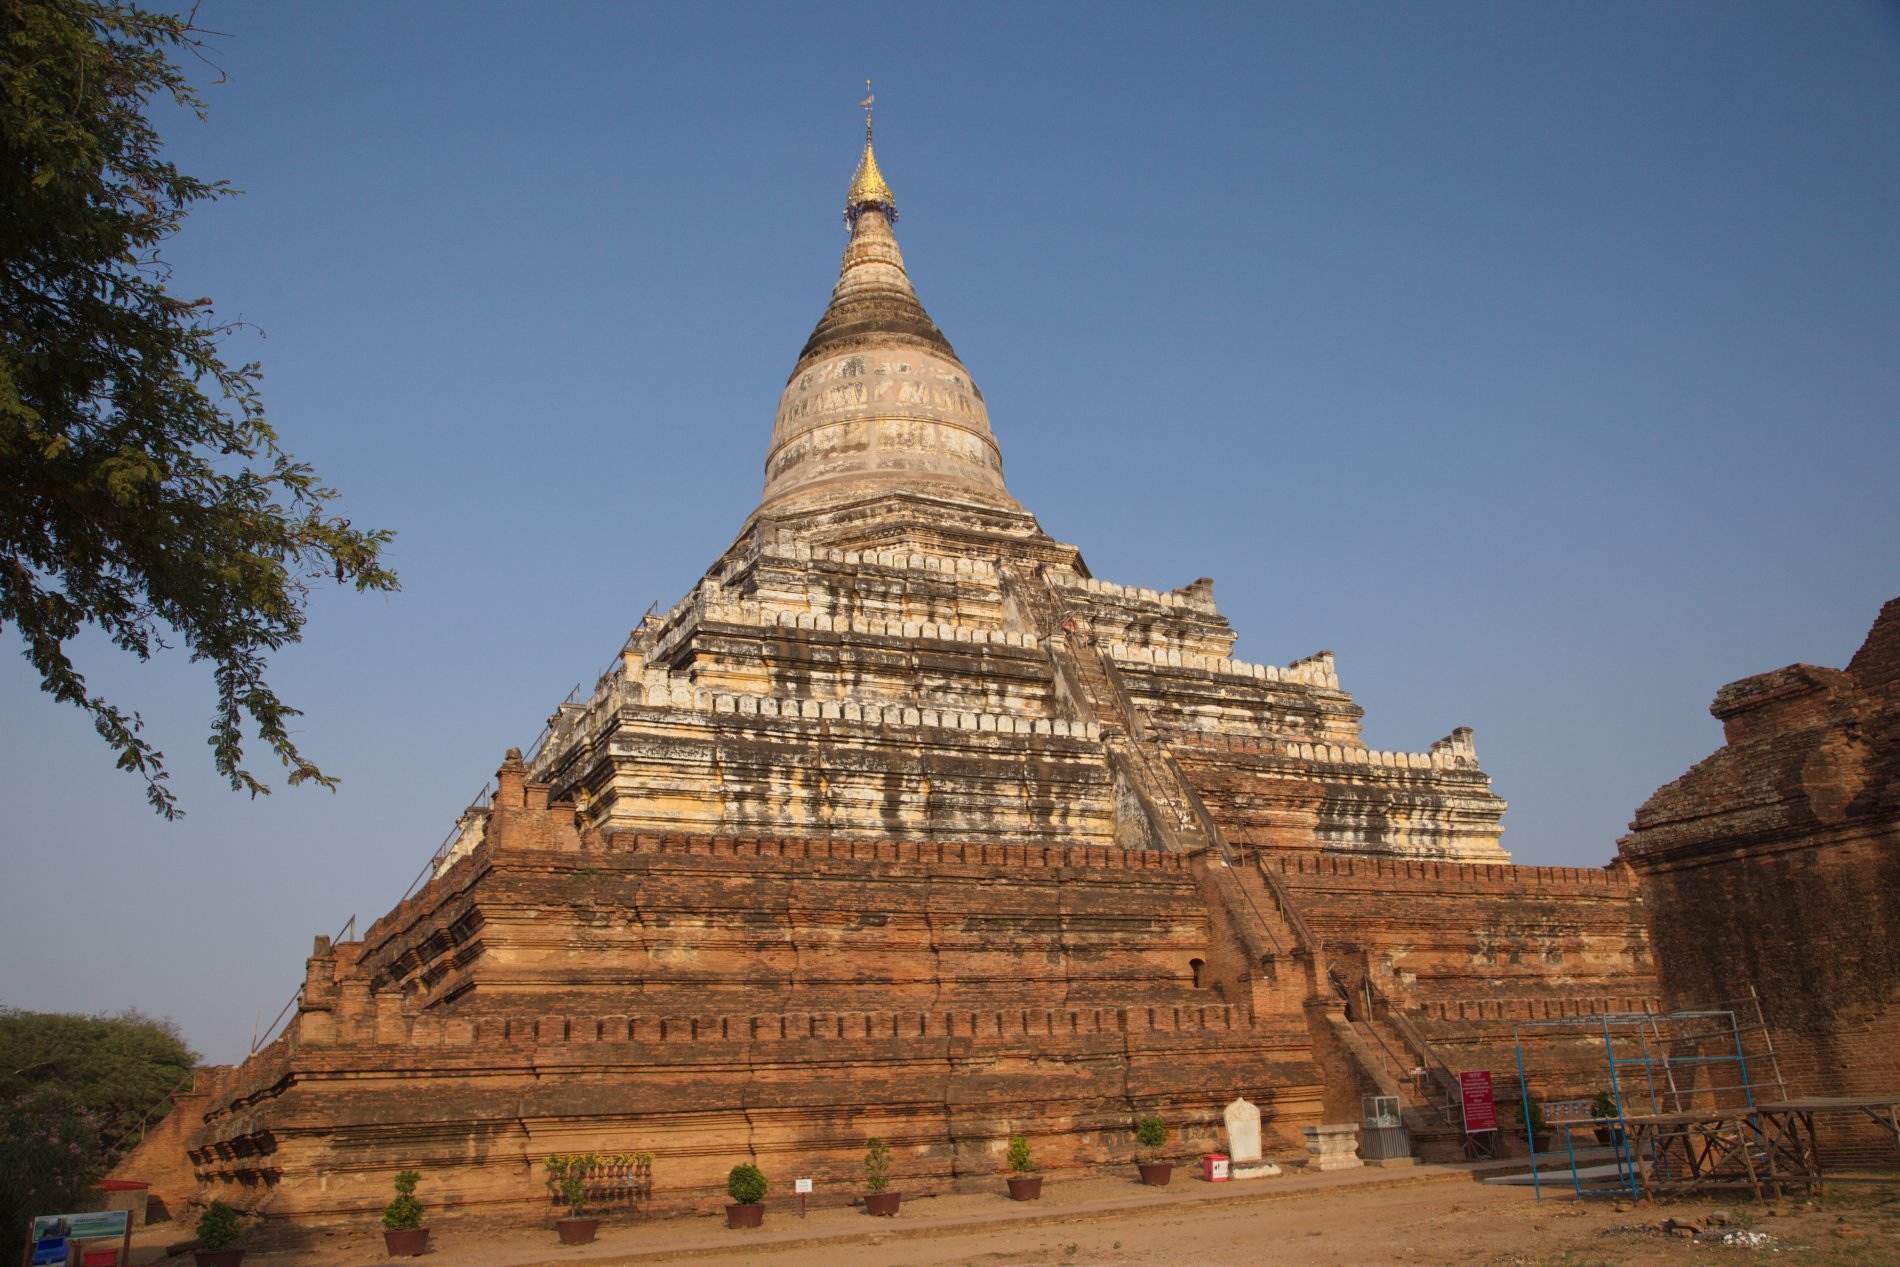 Bagan_239.jpg-commment